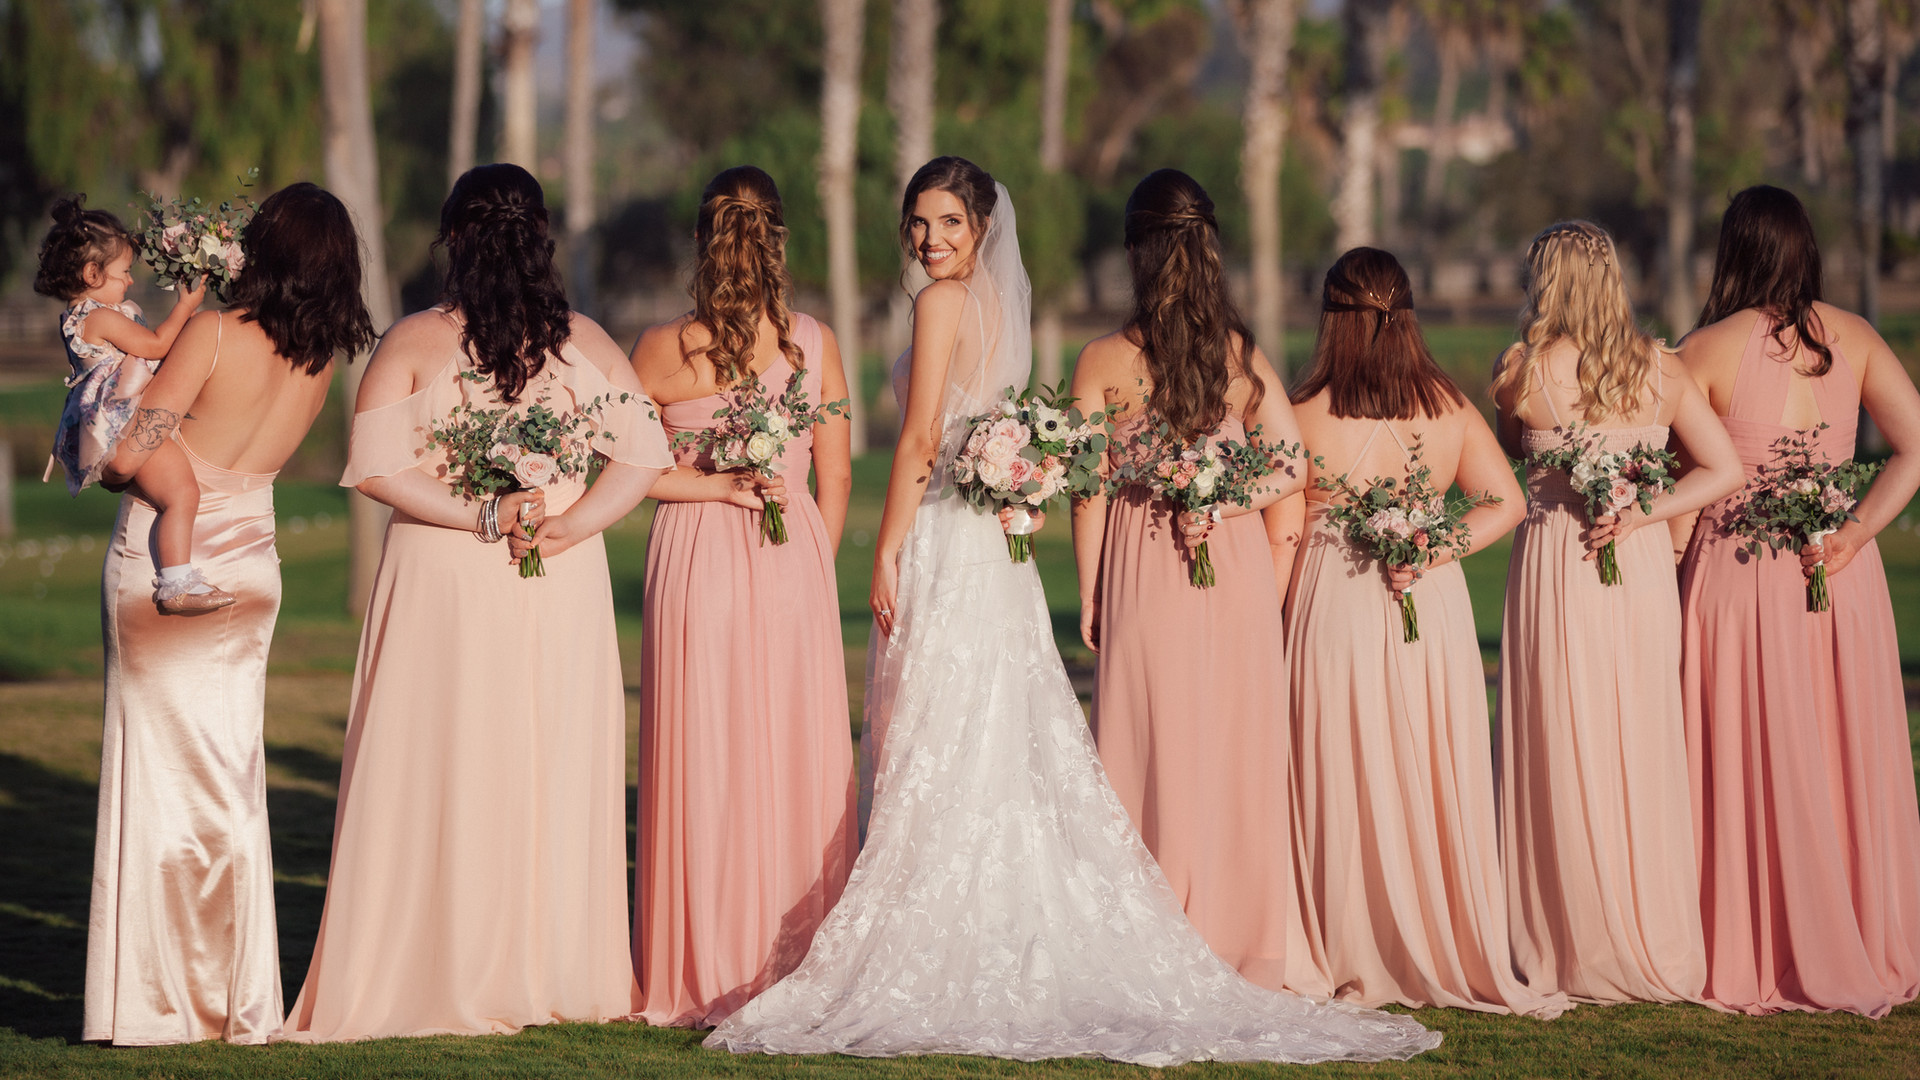 Wedding photography in San Diego area